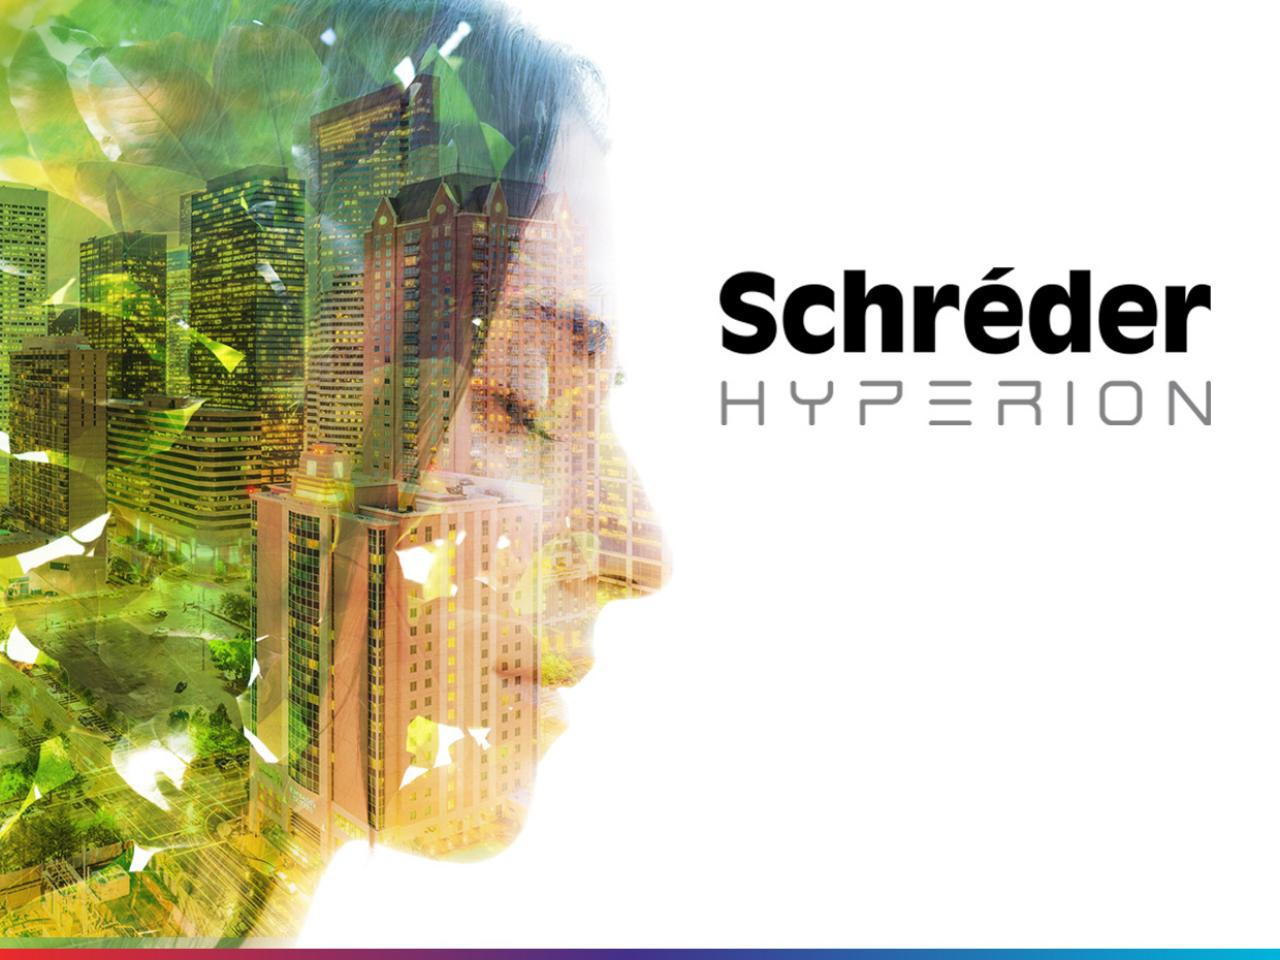 Schréder has opened a smart city centre of excellence in Portugal: Schréder Hyperion